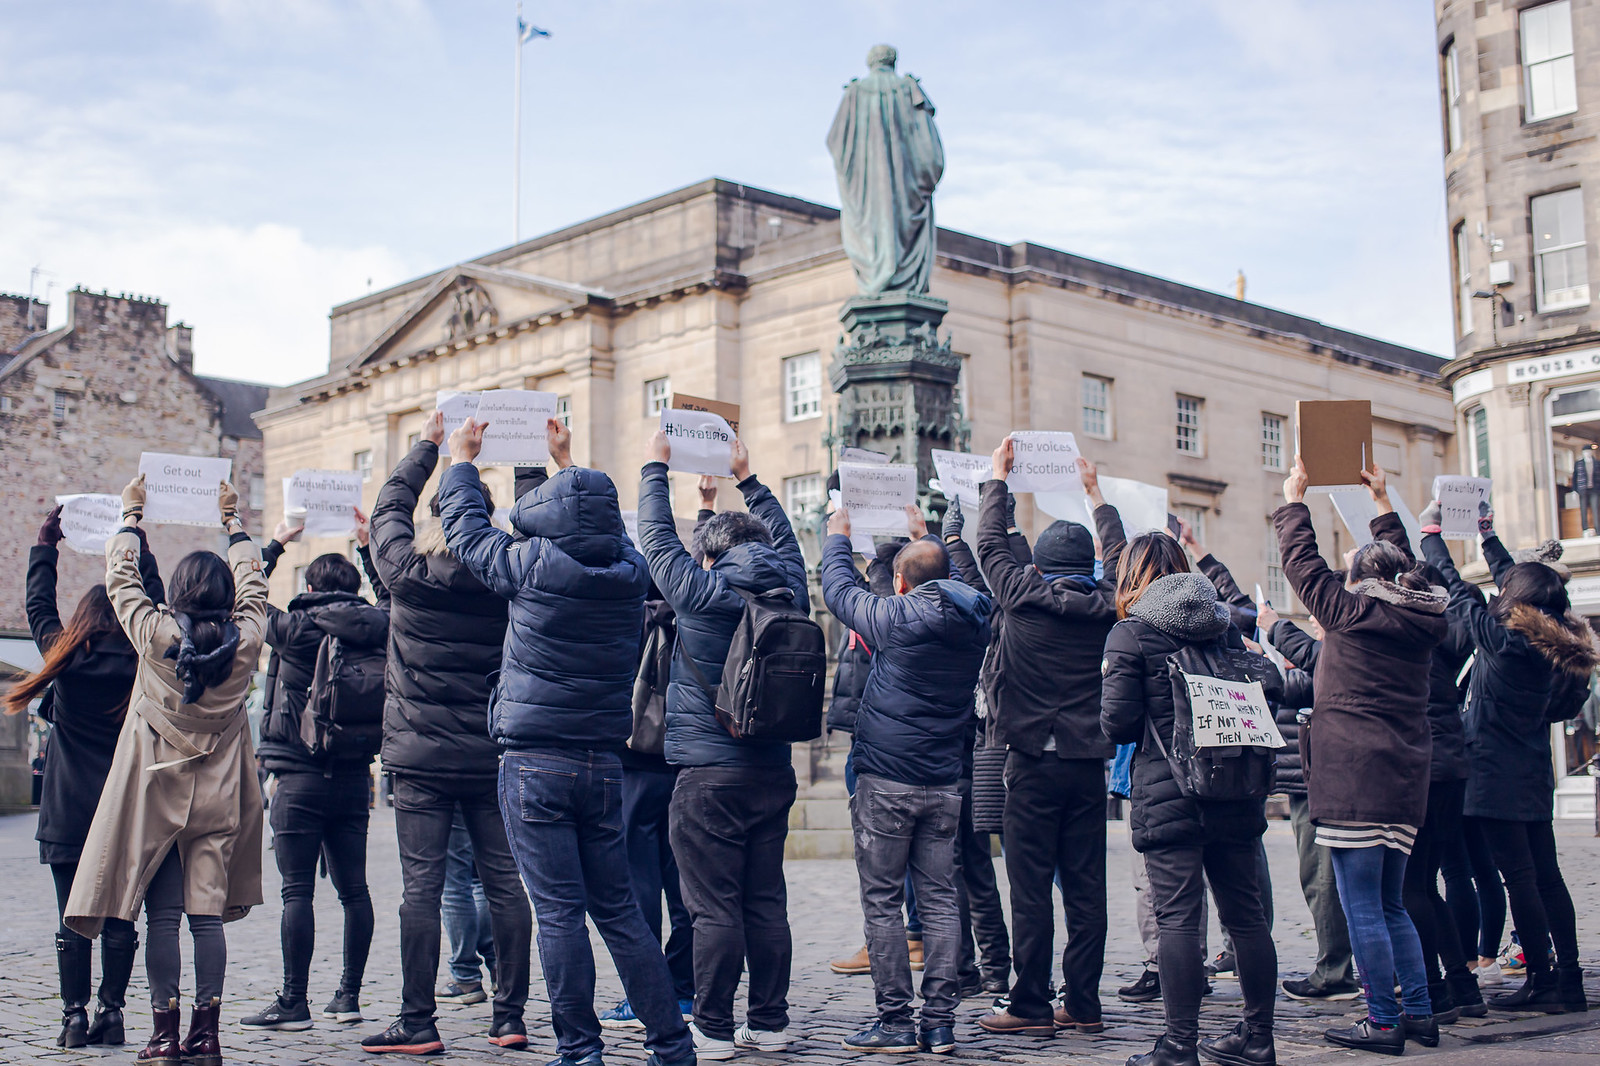 Thai students in Scotland protesting in Edinburgh, all wearing dark jackets and holding protest signs above their head.